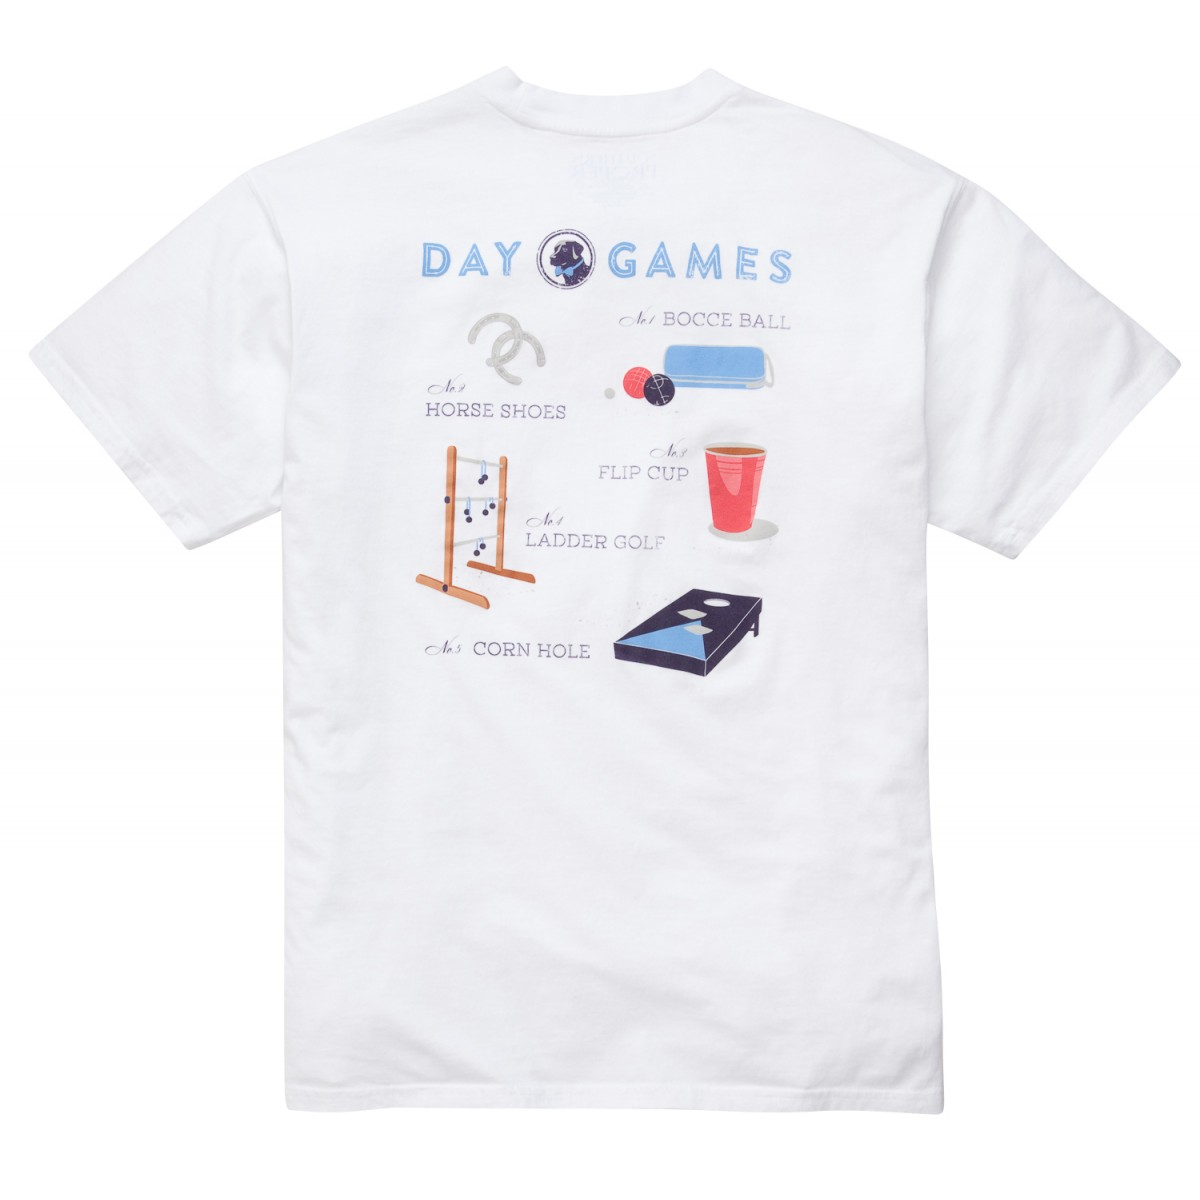 Day Games Tee: White